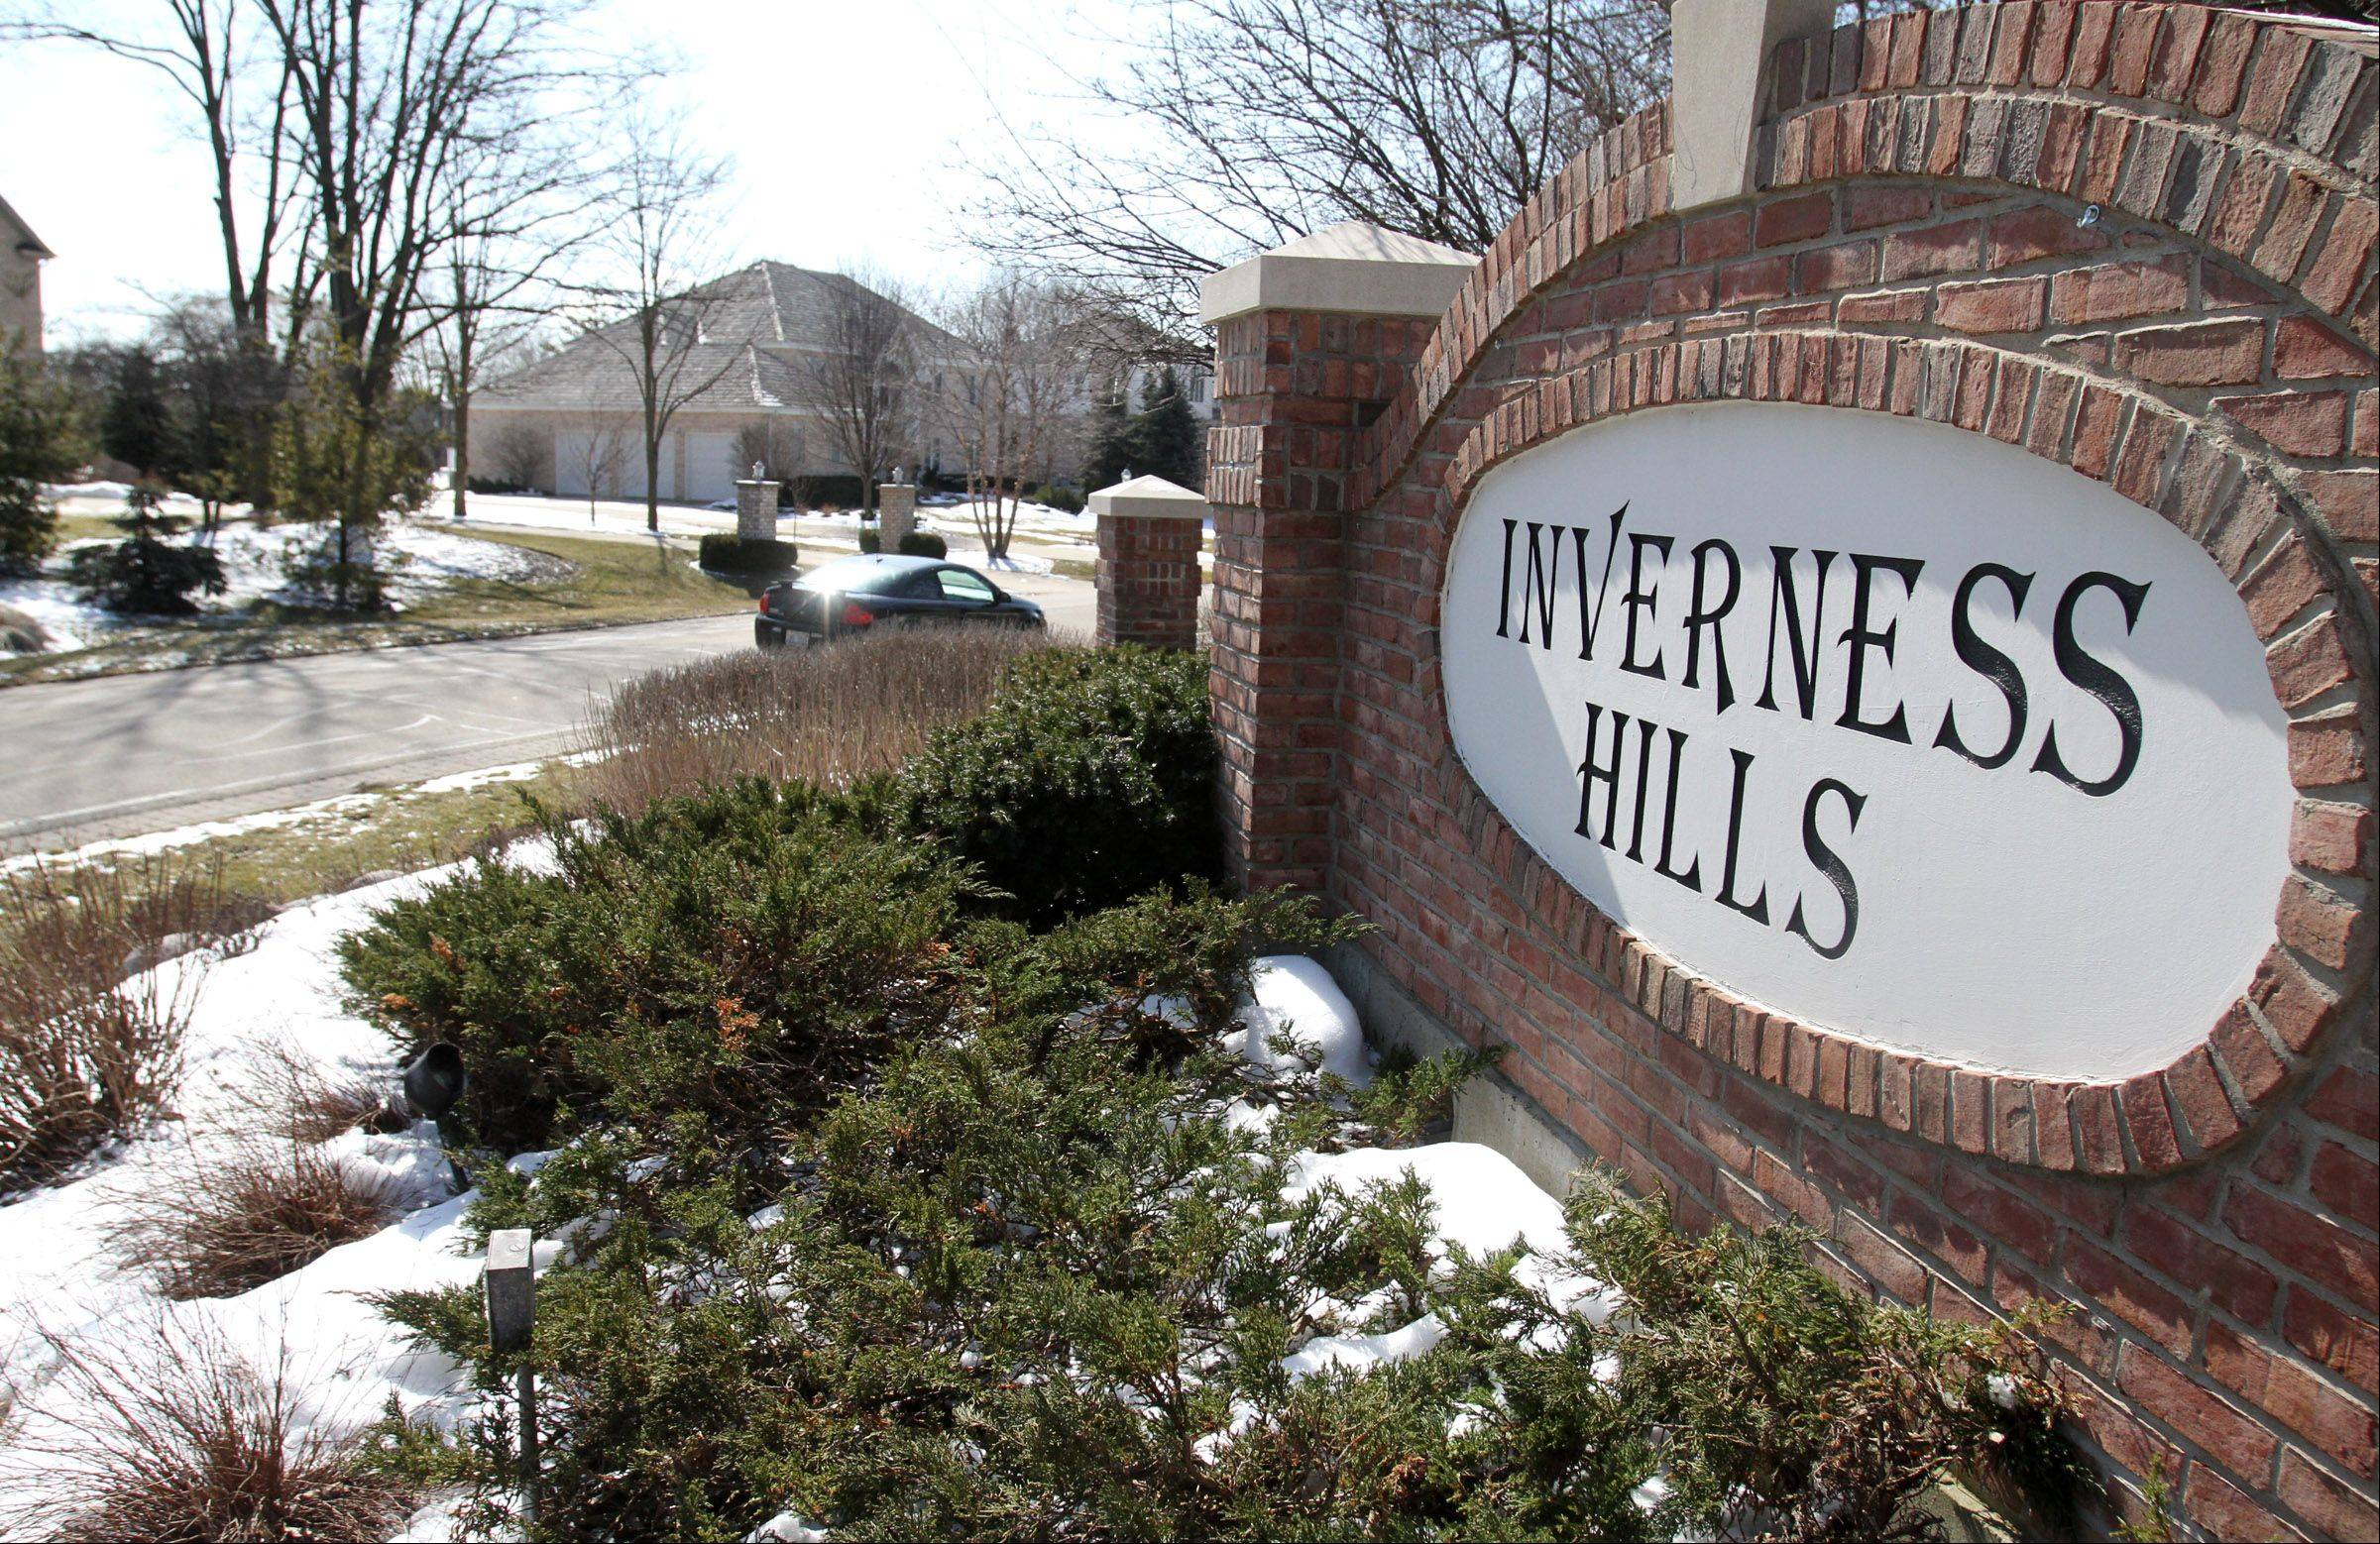 The Inverness Hills neighborhood was largely built in the 1980s when large homes were going up fast in Inverness.